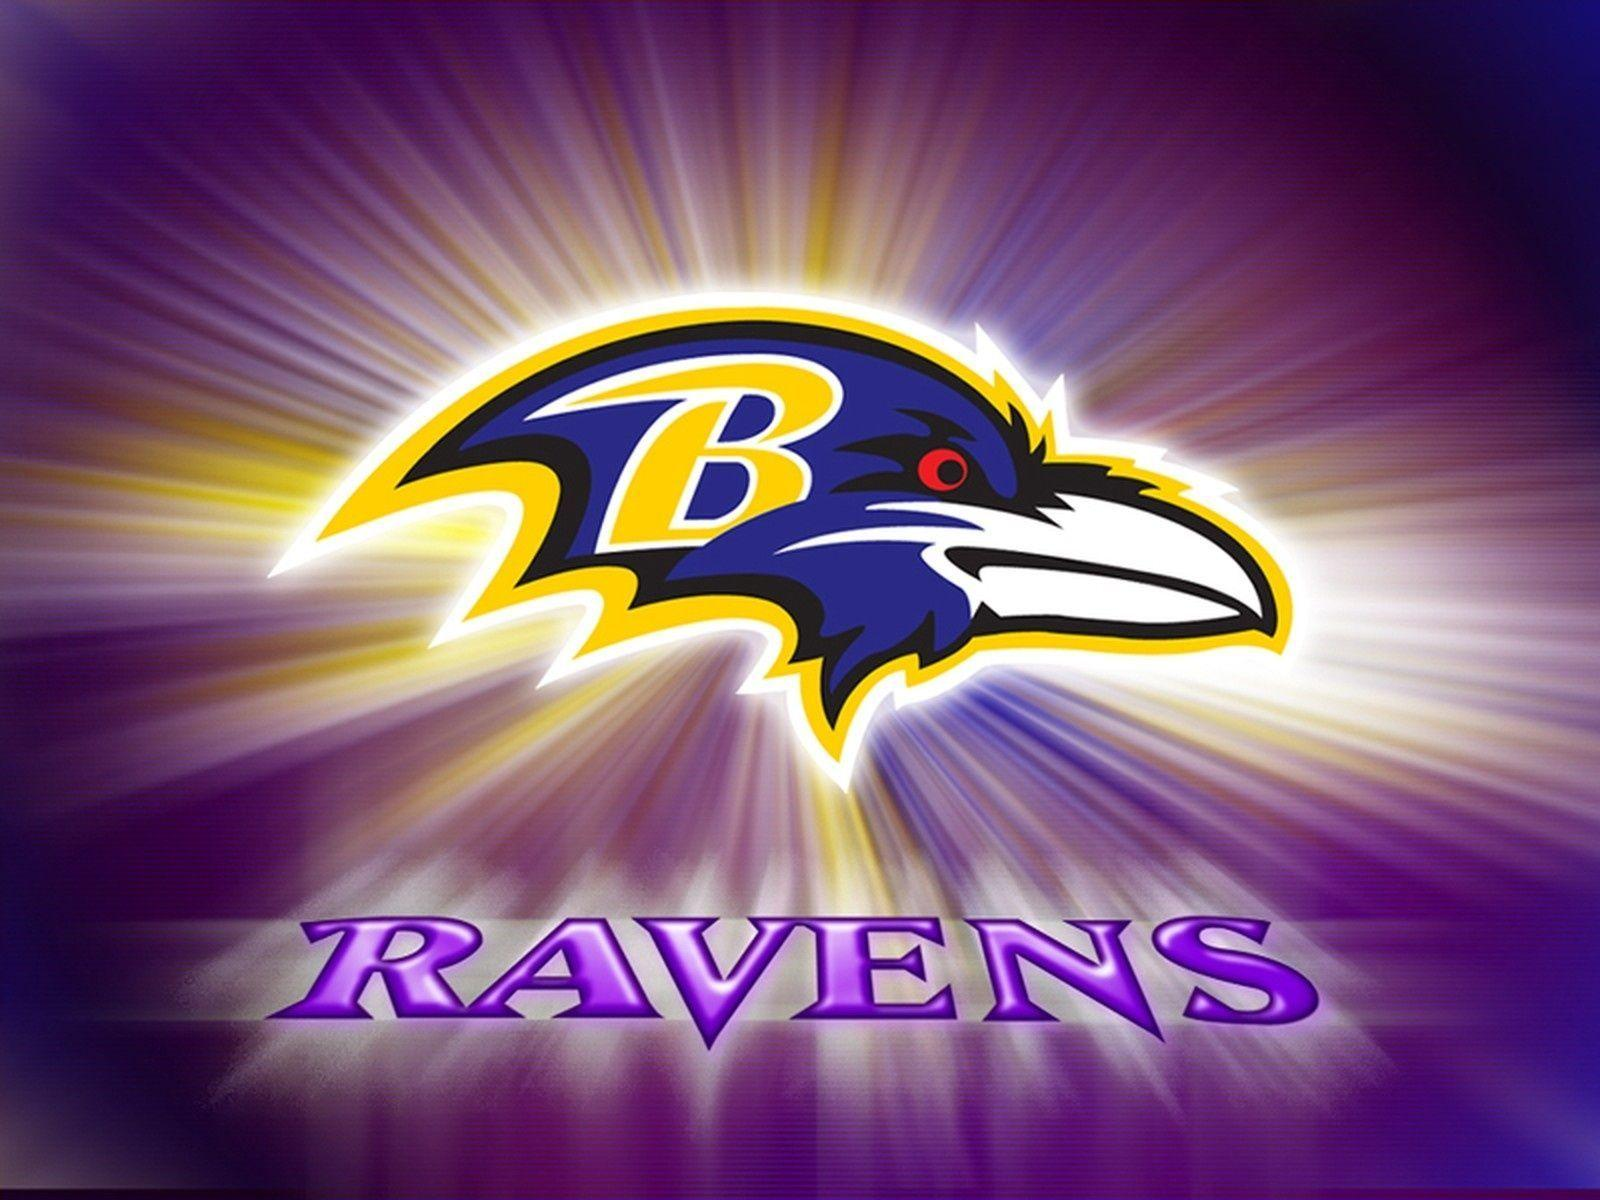 Baltimore Ravens wallpapers HD backgrounds